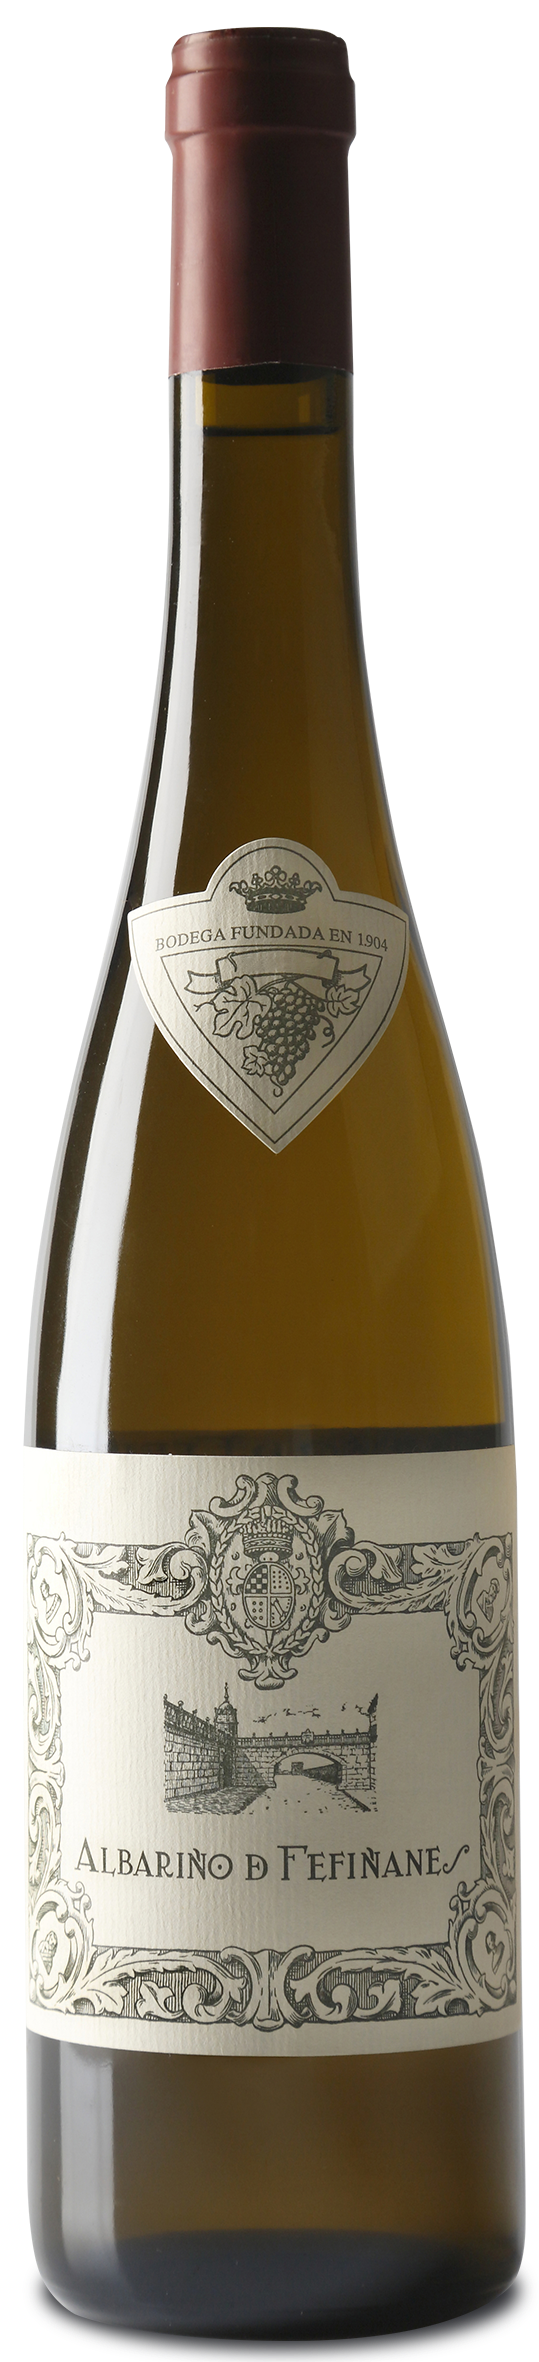 Bottle of Albariño de Fefiñanes